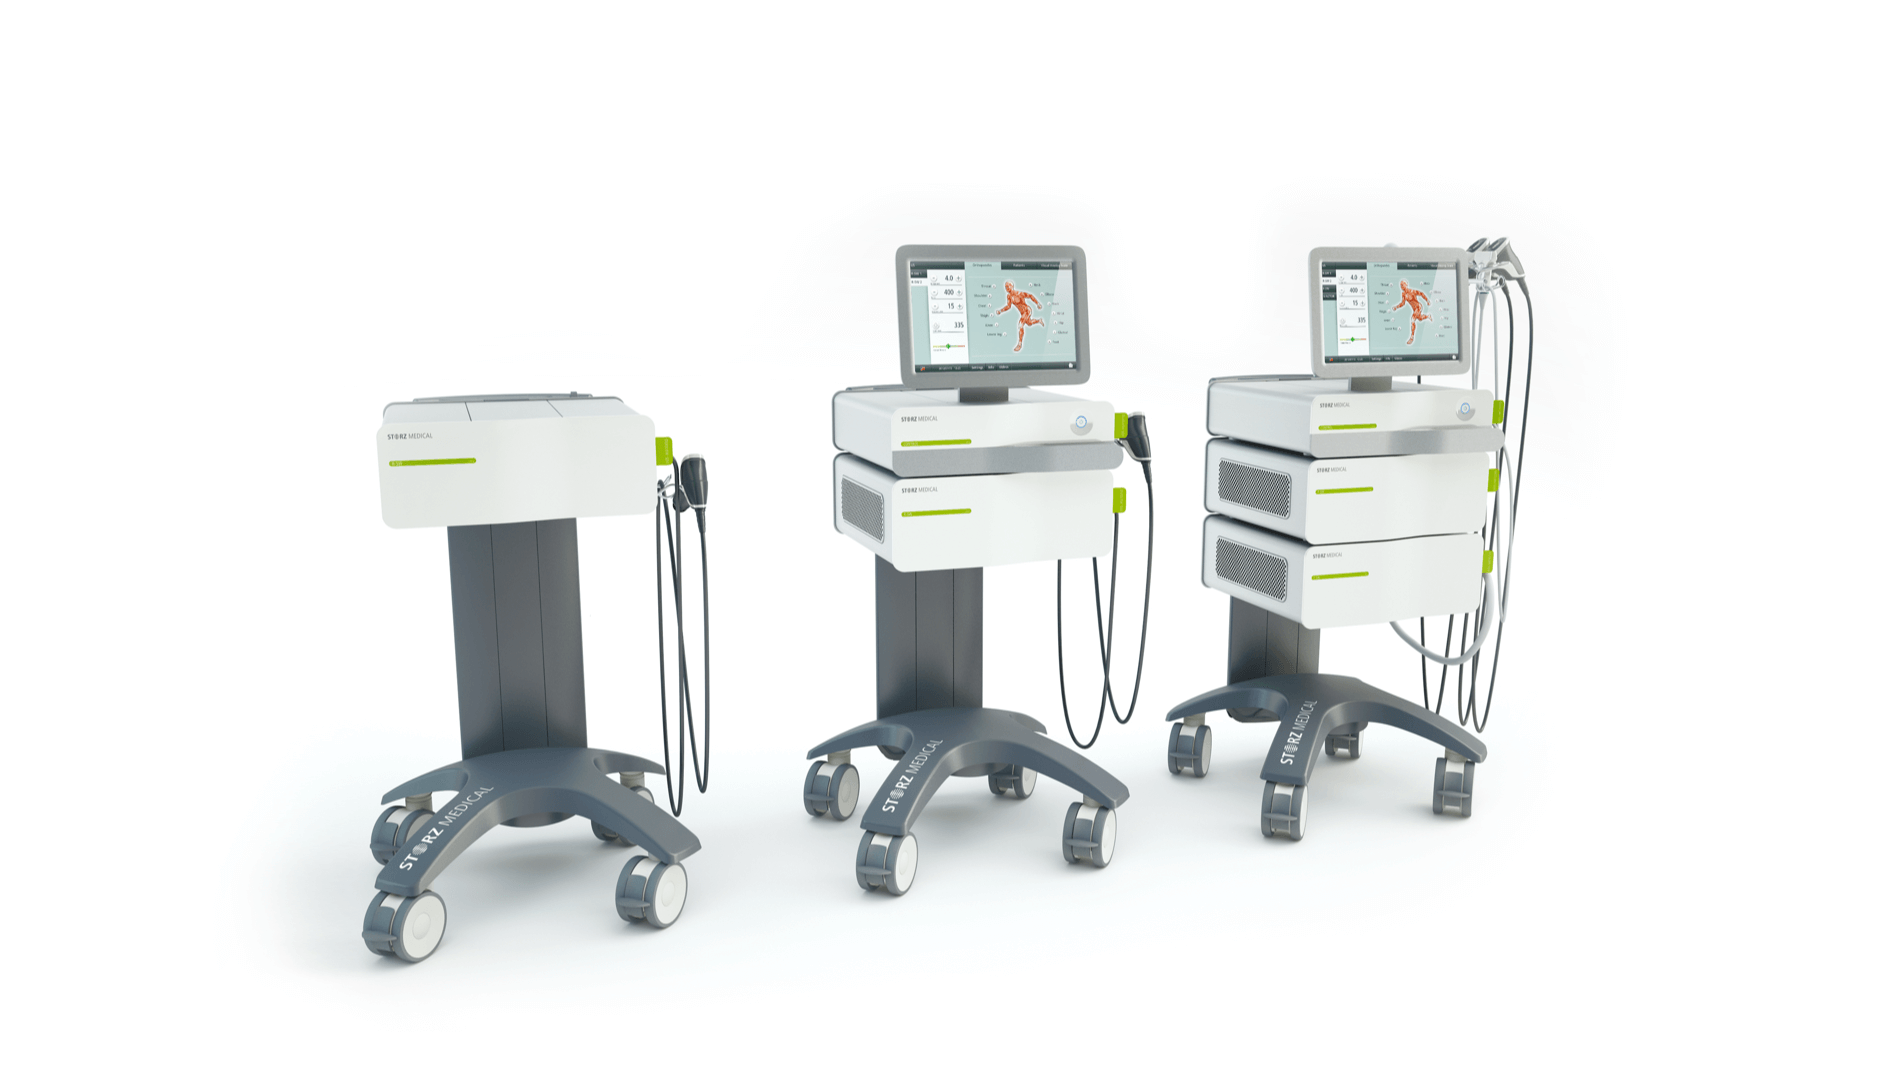 The Duolith SD1 ultra family by Storz Medical placed in a row